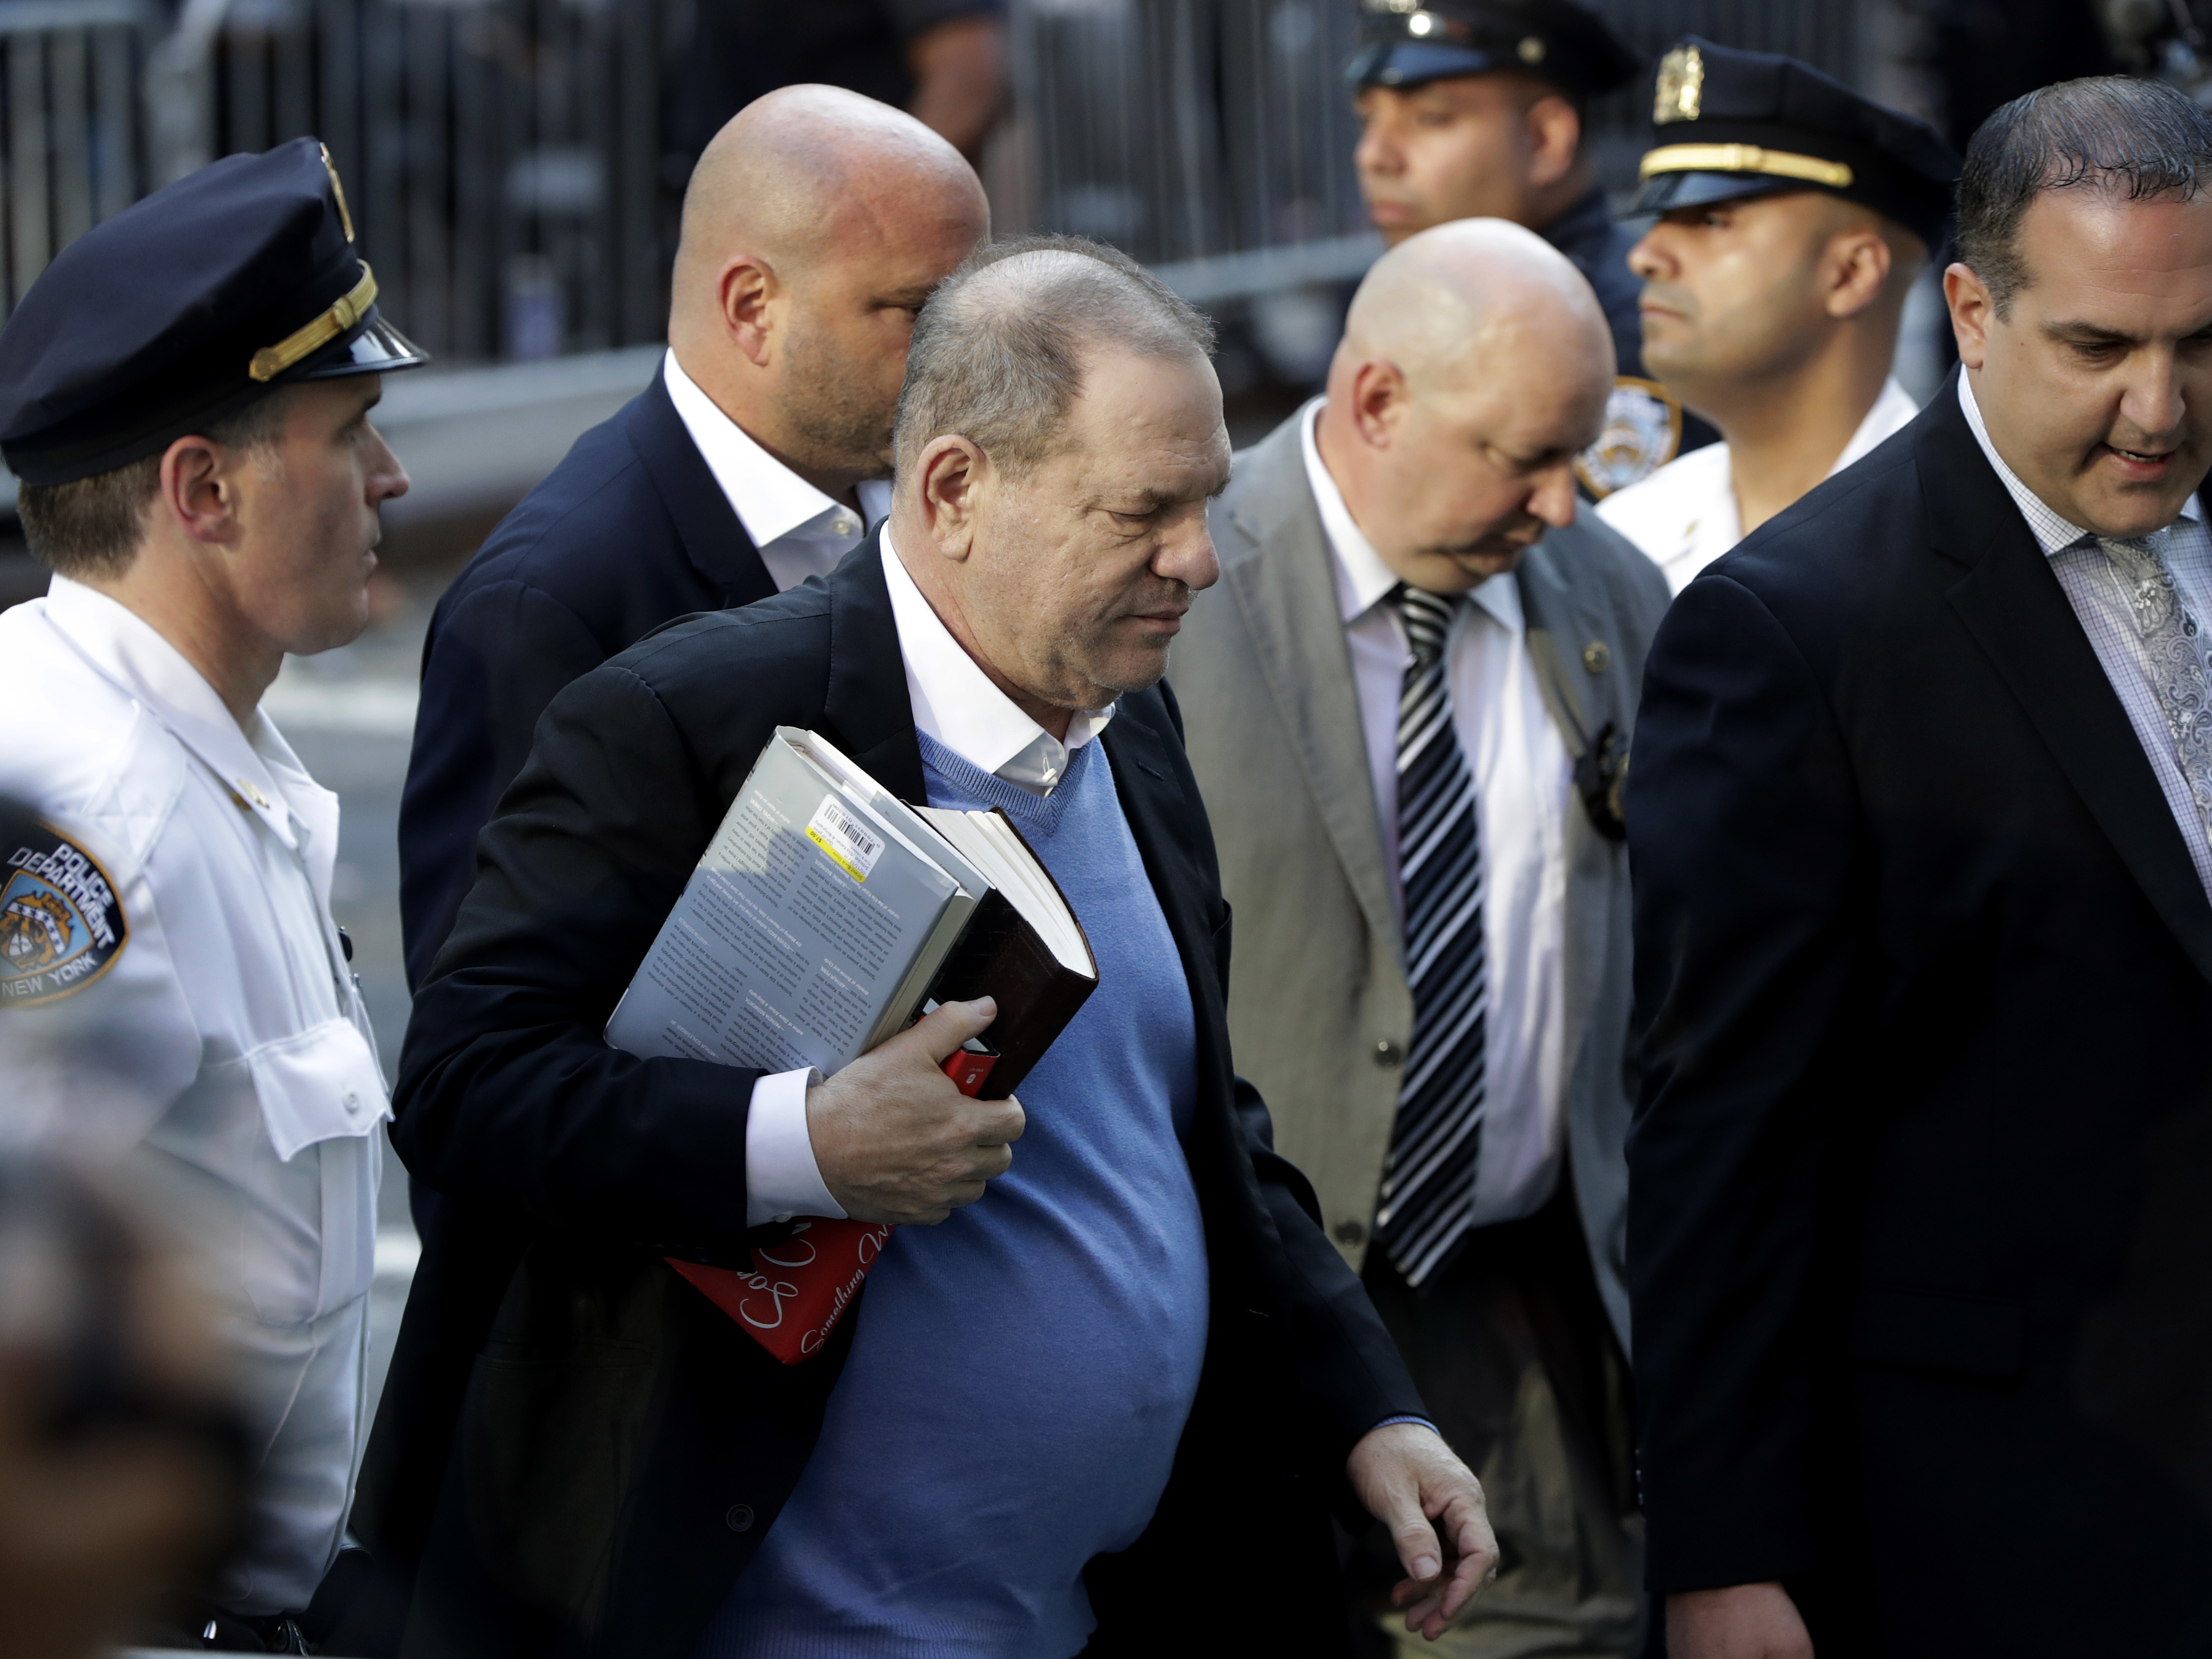 Harvey Weinstein turns himself in to police at a station in Manhattan on Friday morning.